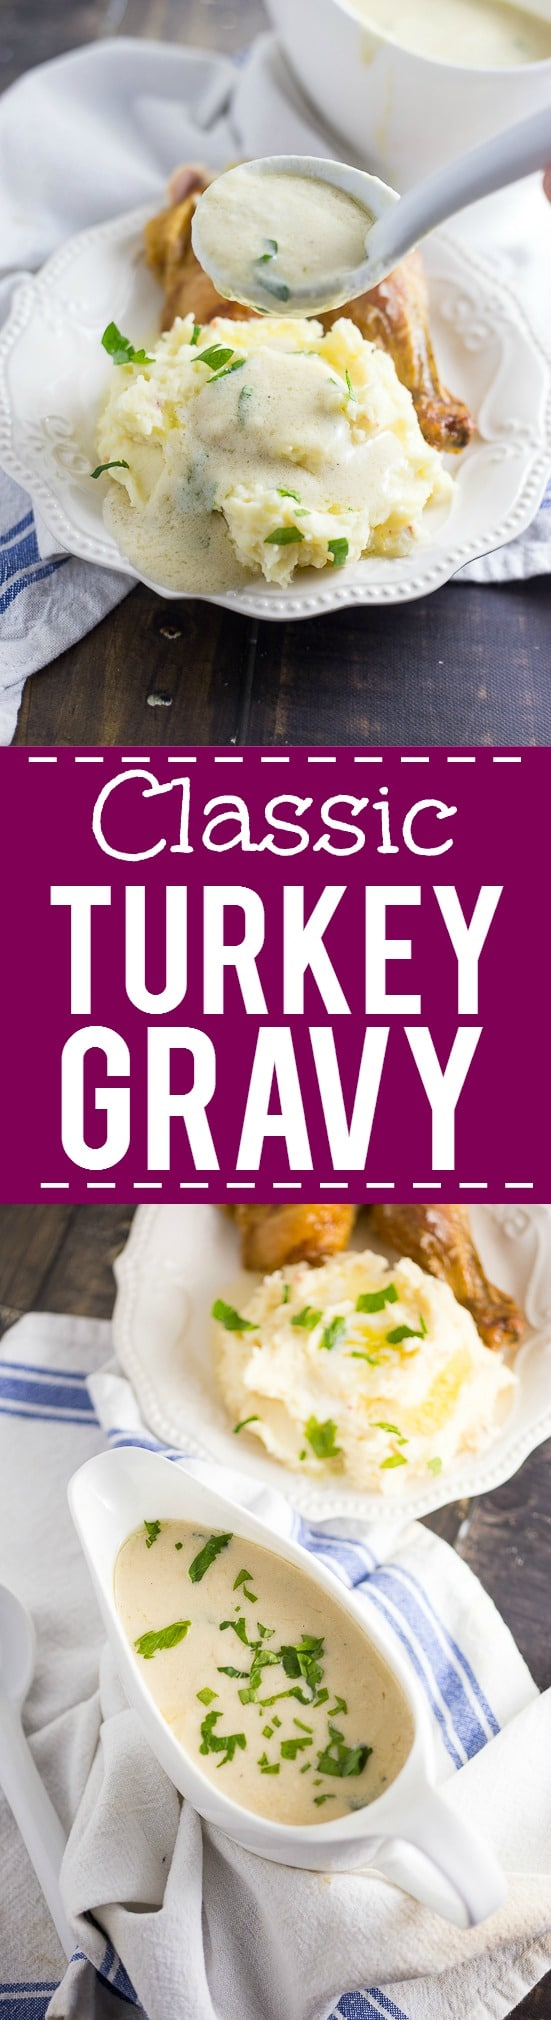 Easy Classic Turkey Gravy Recipe with a secret ingredient that makes it totally amazing. Perfect for Thanksgiving! A simple classic Turkey Gravy recipe that is guaranteed to please on your Thanksgiving table. The perfect turkey gravy recipe to complement your gorgeous Thanksgiving turkey.